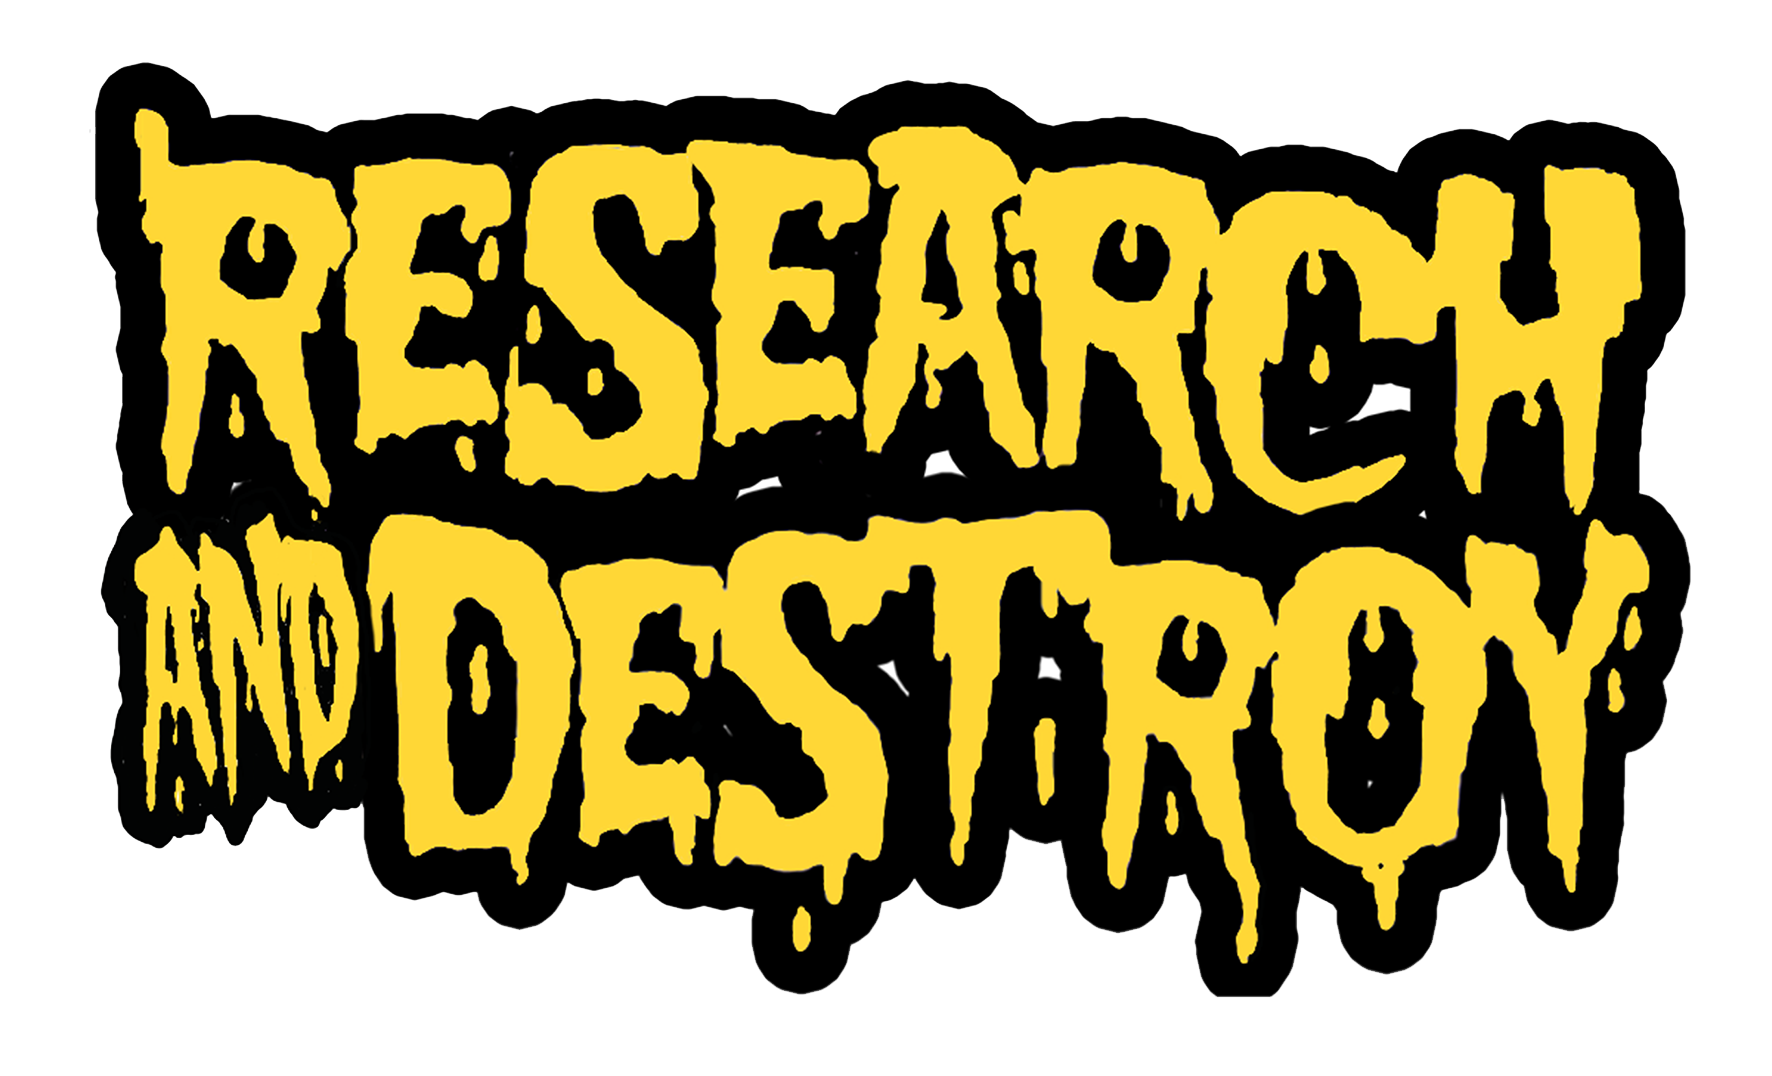 Research and Destroy